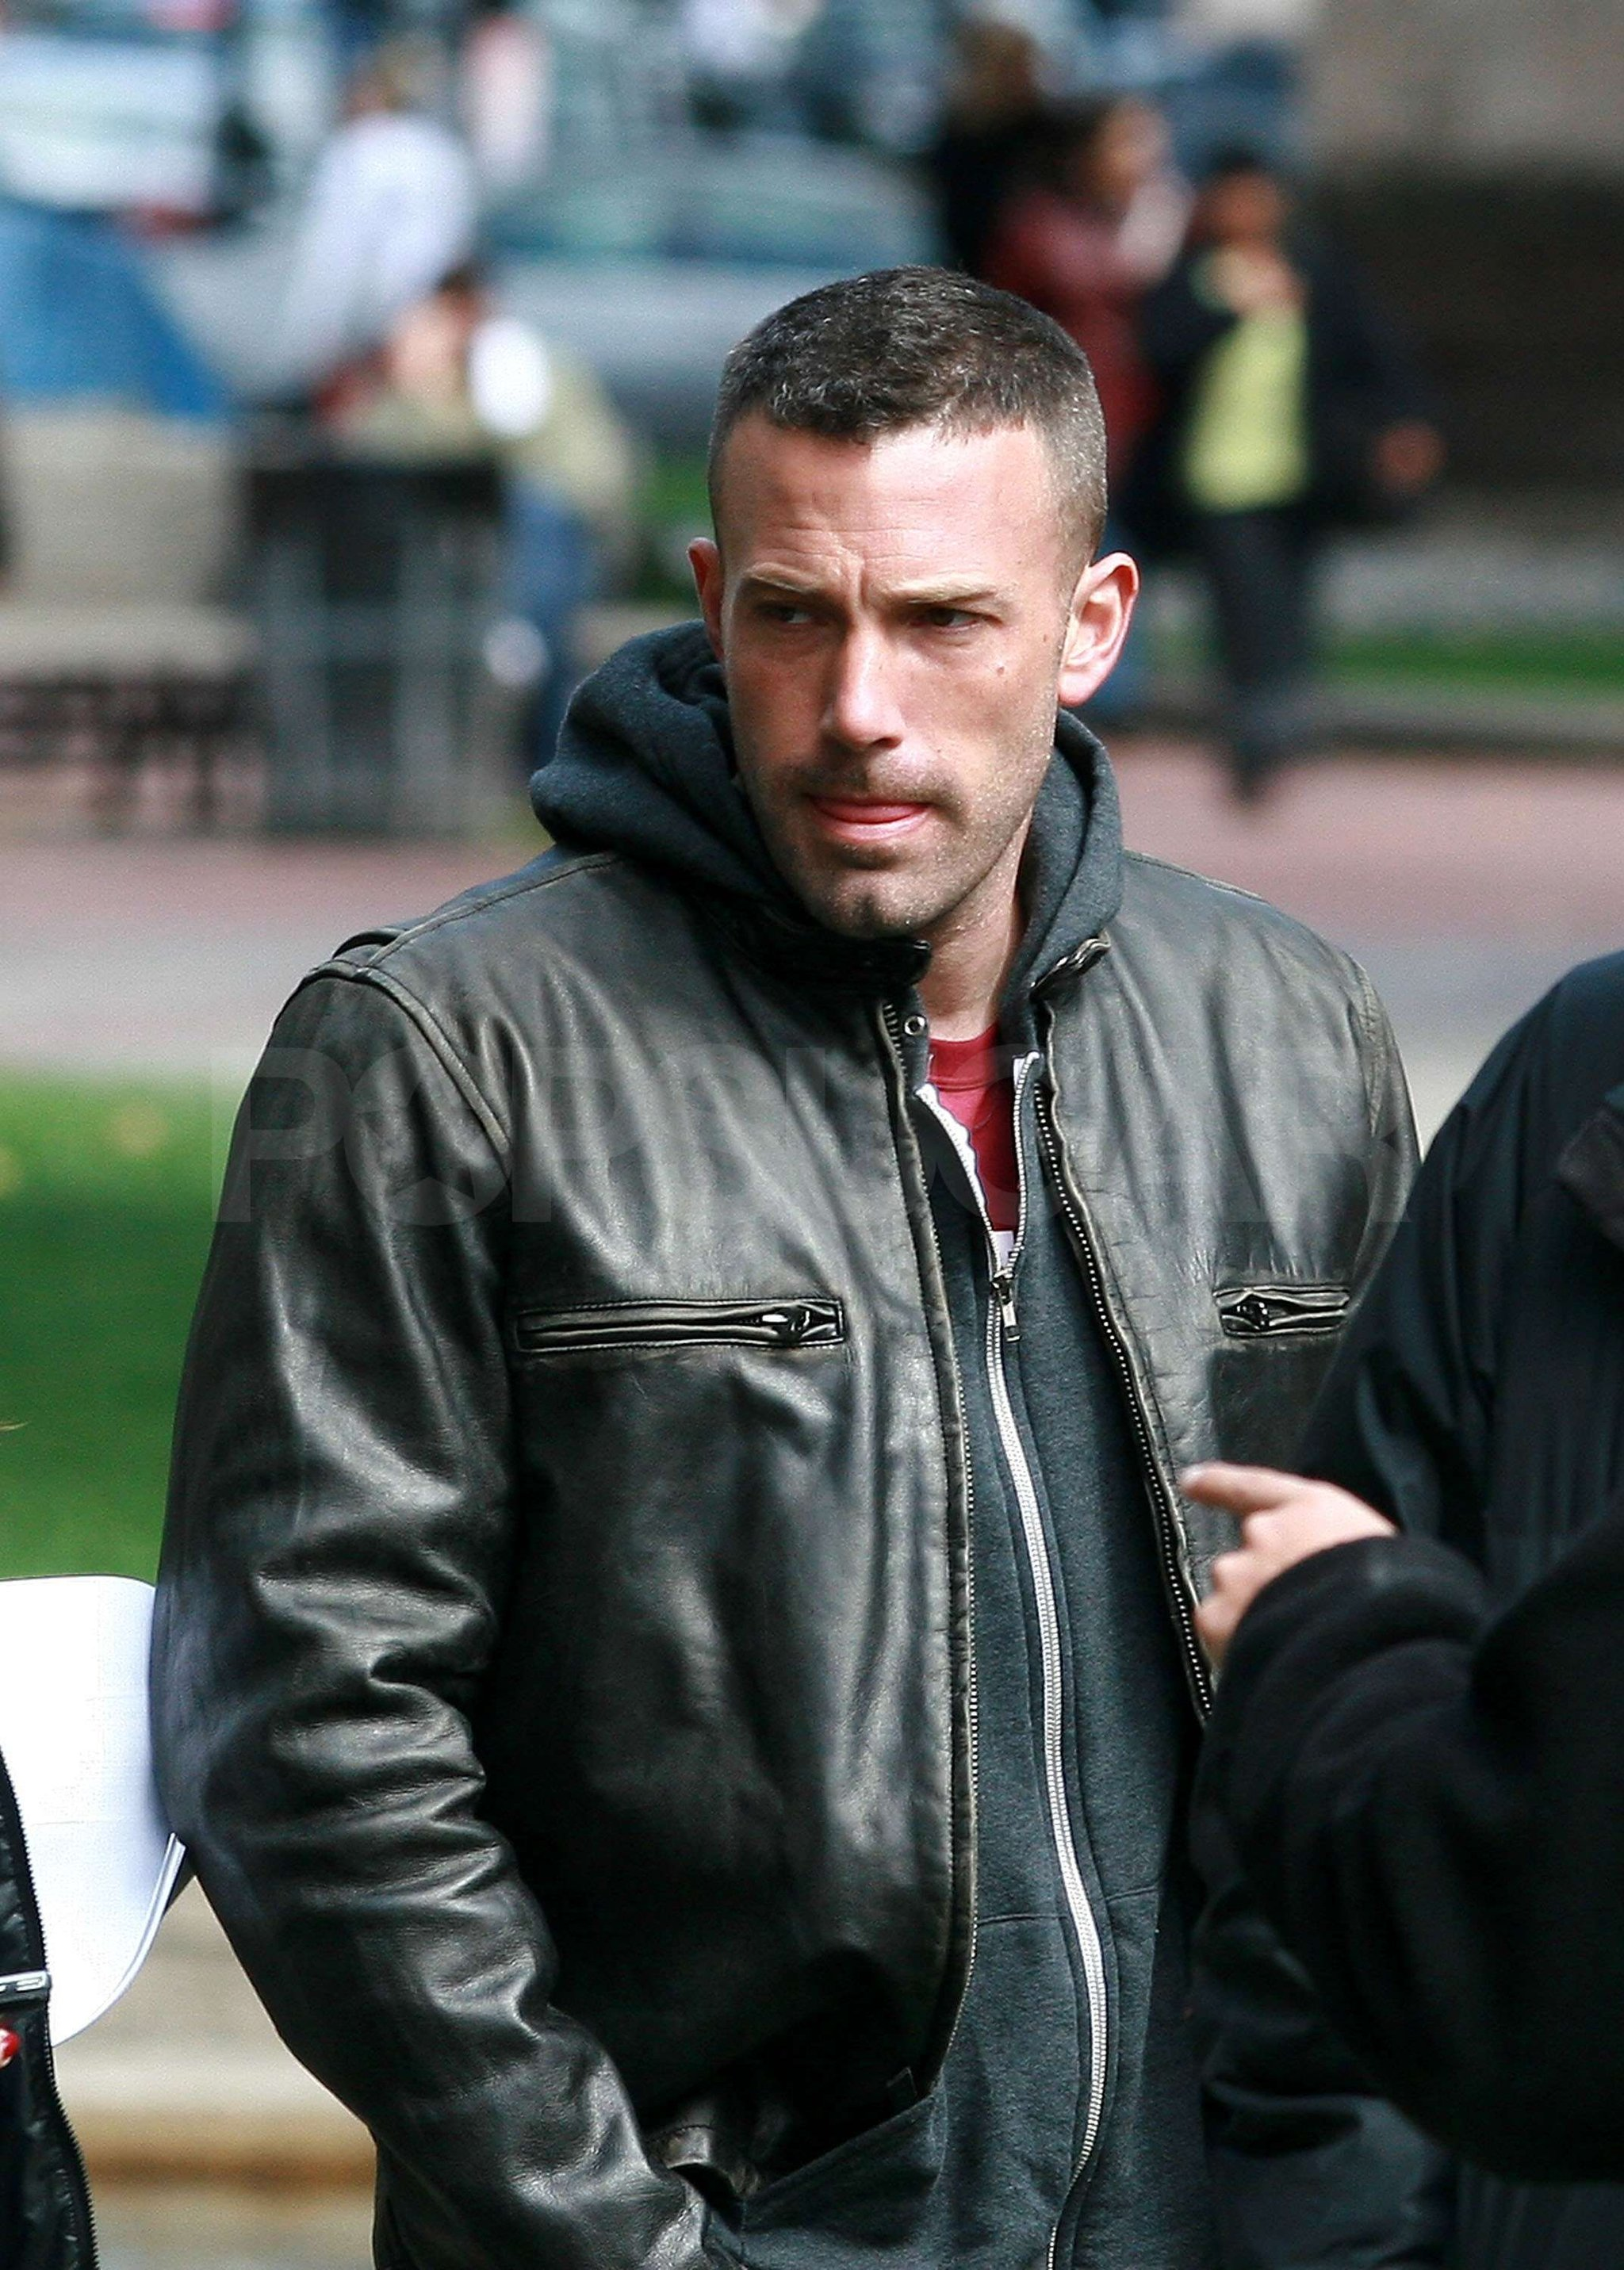 Bundles-up-in-Town-Ben-Affleck-Leather-Jacket-2